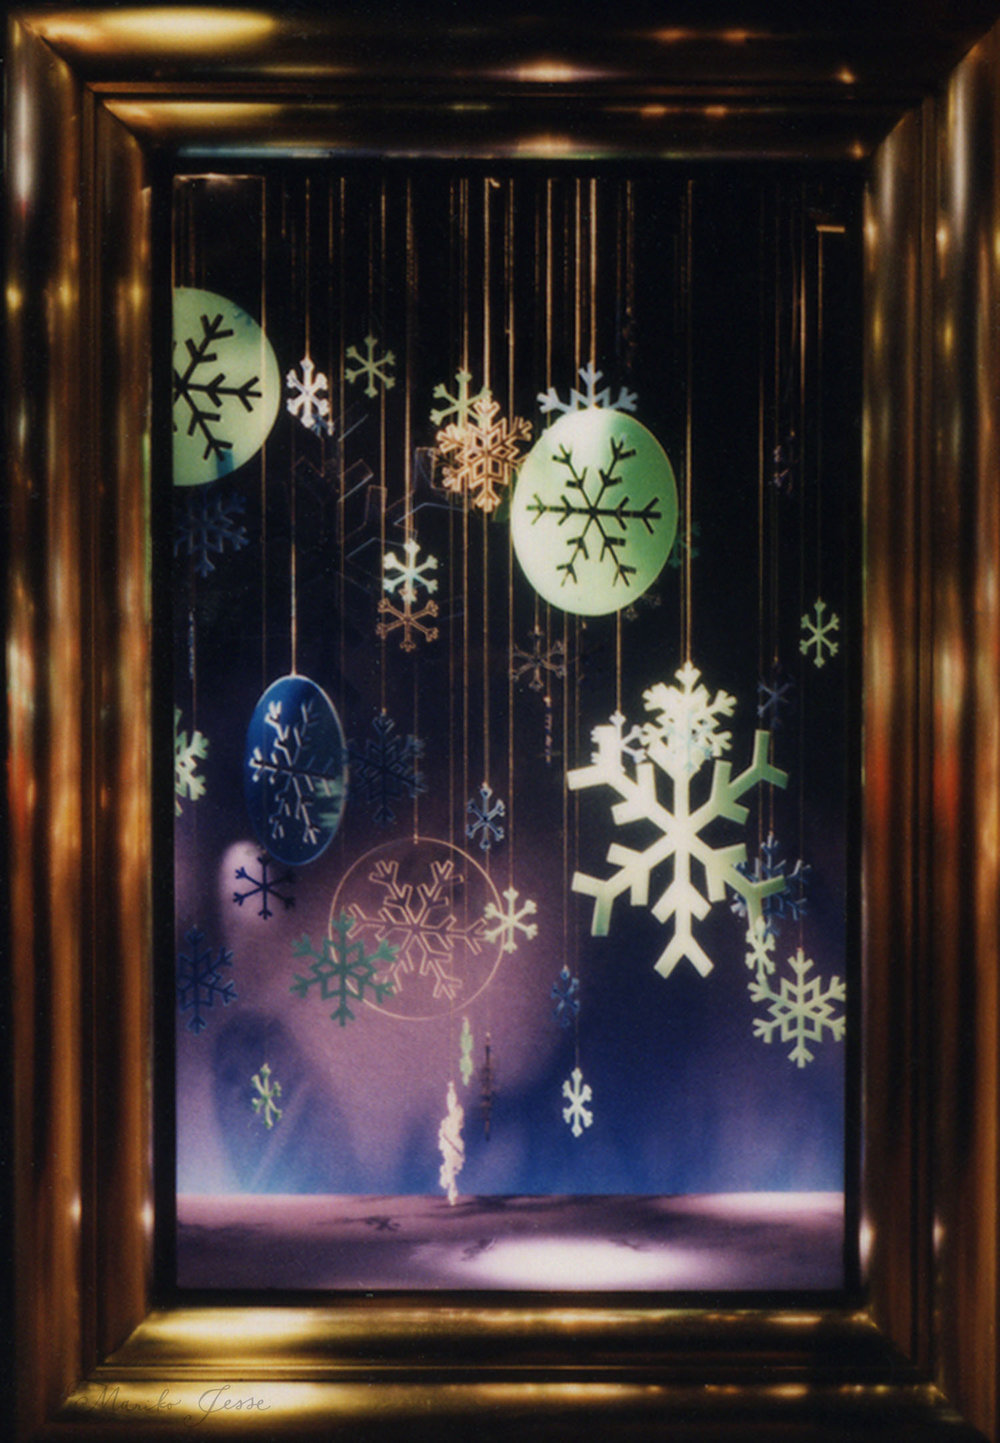 Tiffany & Co. window display